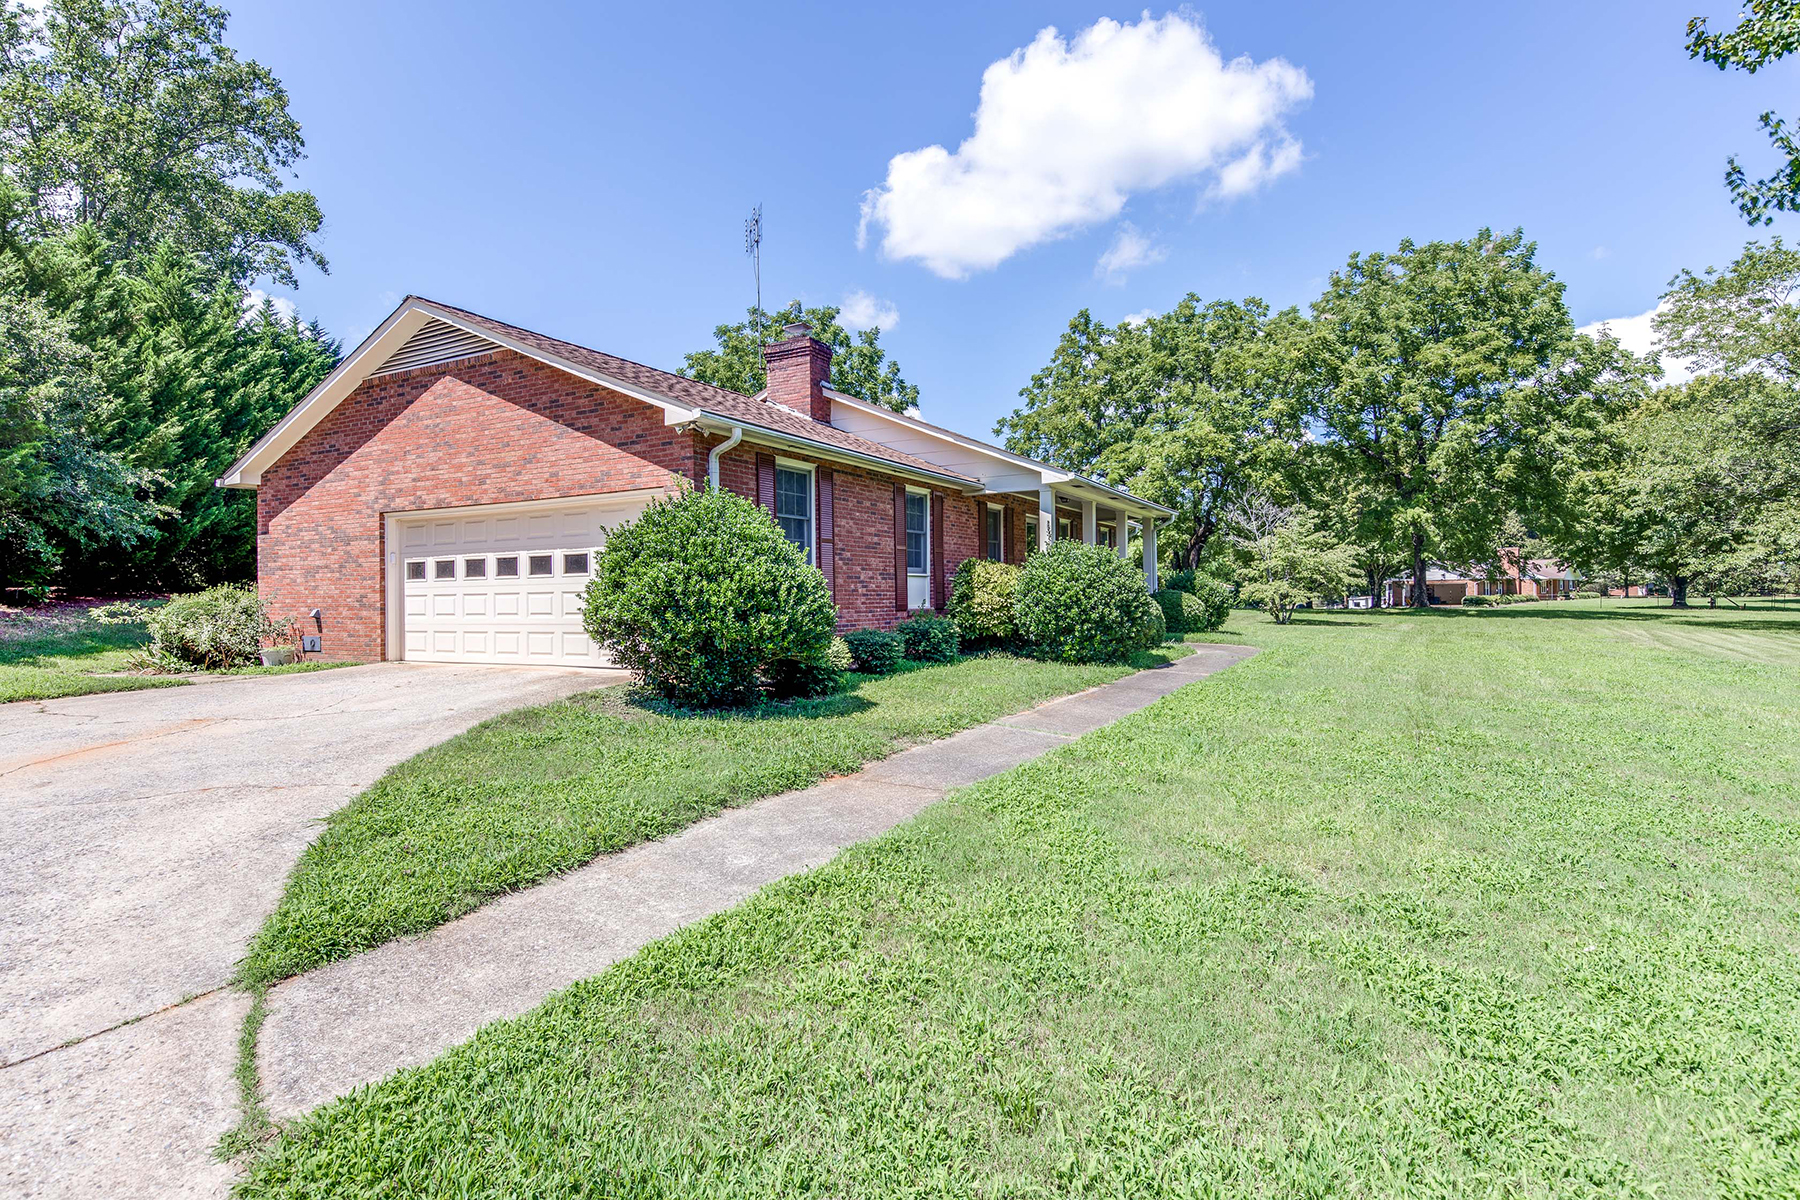 Single Family Home for Sale at RUTHERFORDTON 696 New Hope Rd, Rutherfordton, North Carolina 28139 United States